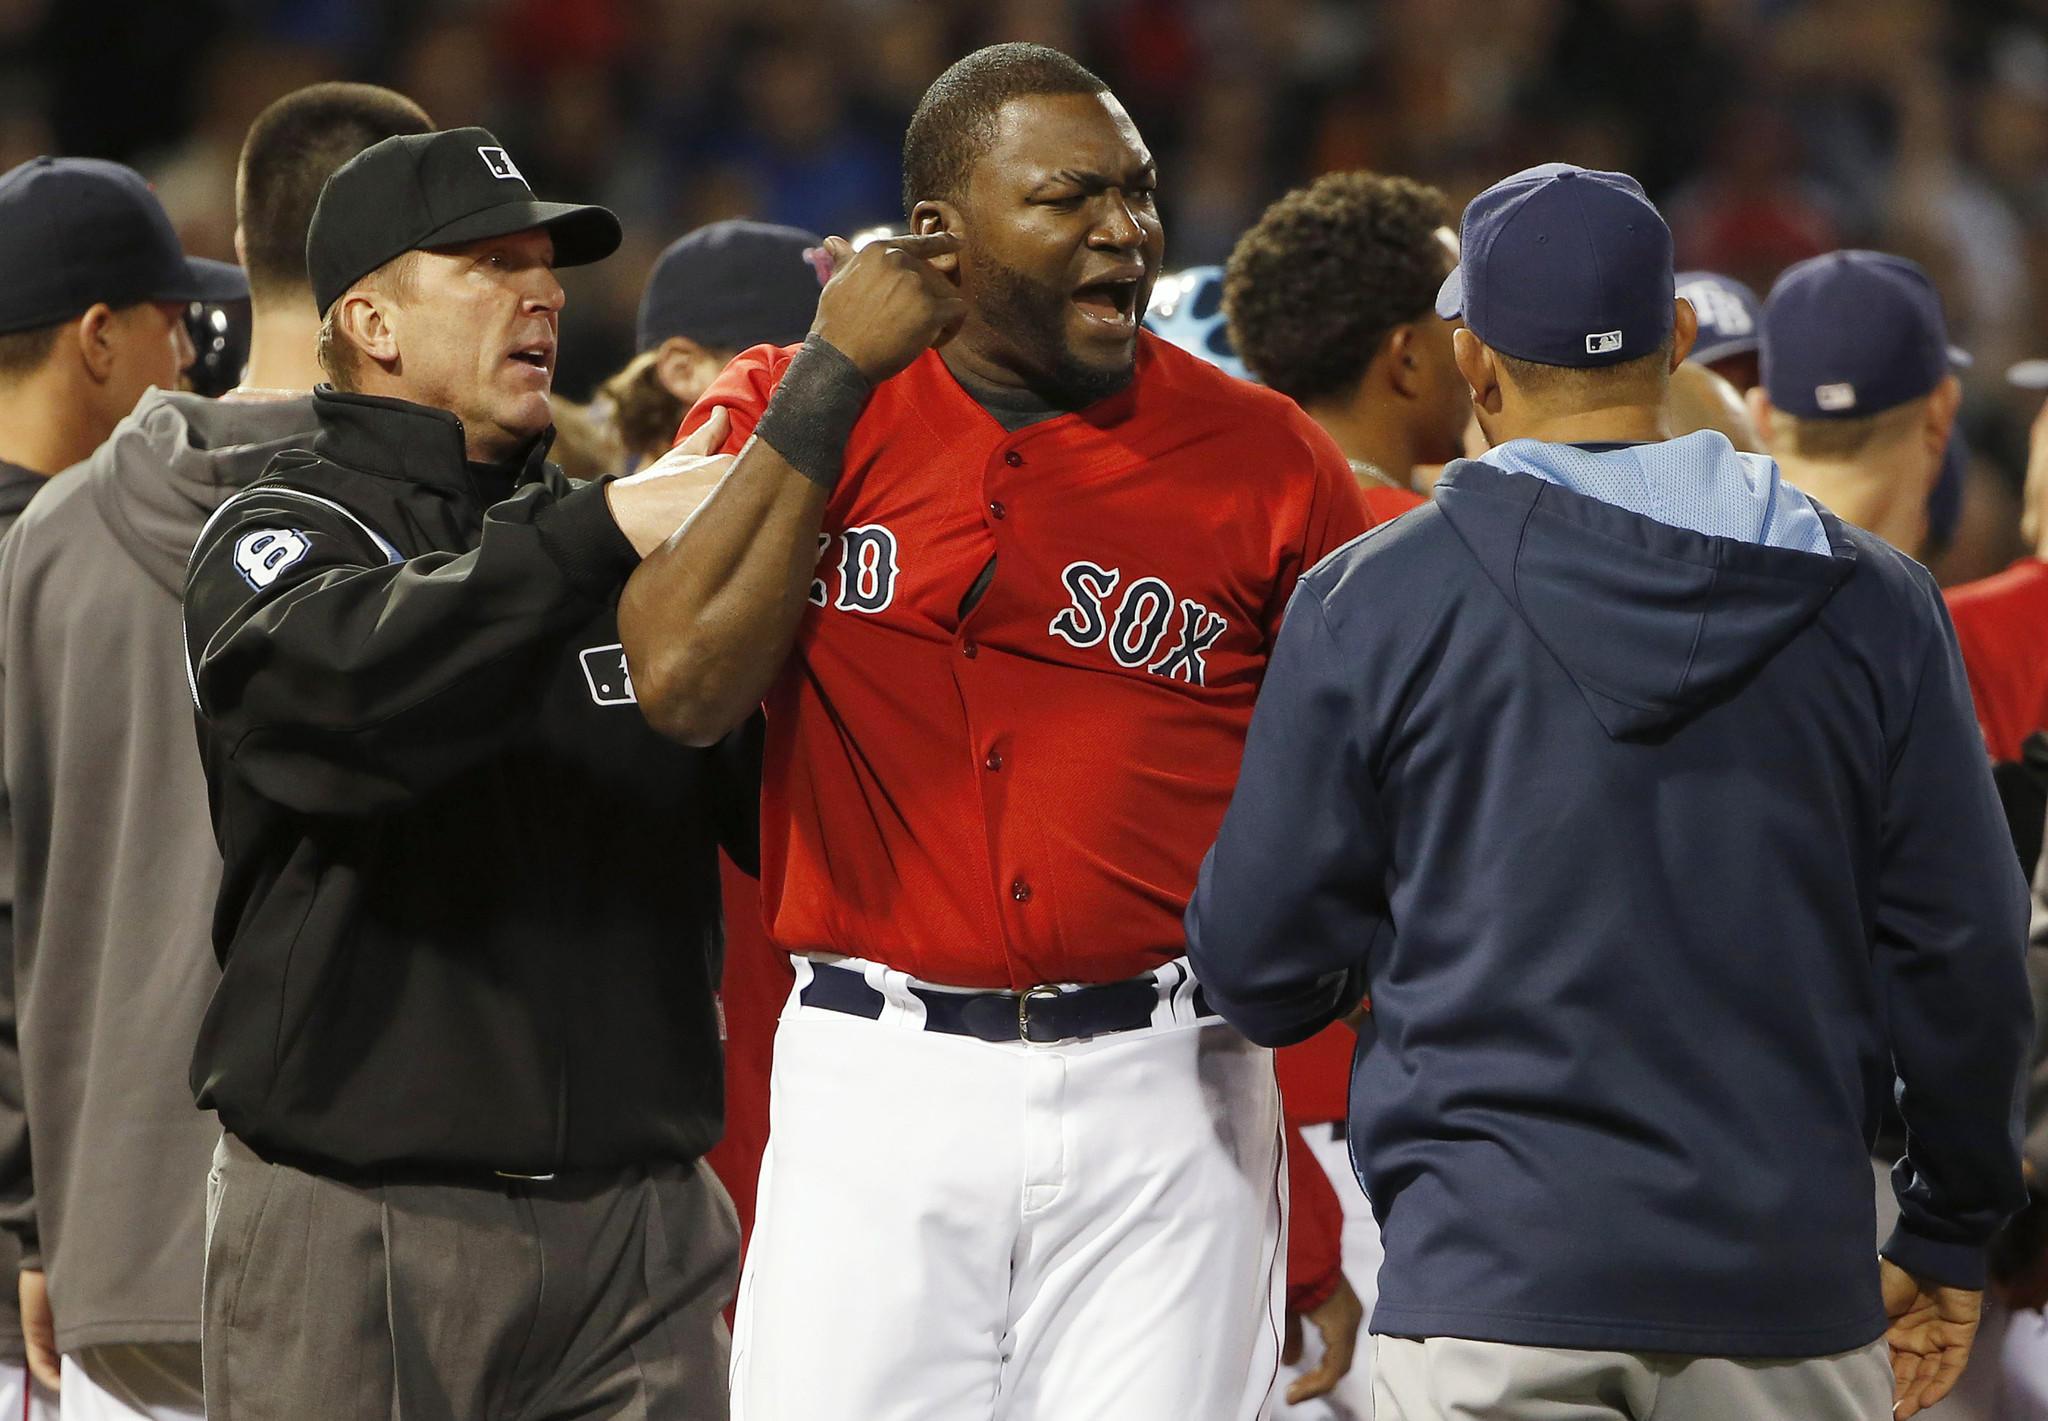 David Ortiz #34 of the Boston Red Sox is contained by an unidentified Tampa Bay Ray and umpire Jeff Kellogg #8 after teammate Mike Carp #37 of the Boston Red Sox was hit by a pitch during the fourth inning of the game at Fenway Park on May 30, 2014 in Boston.